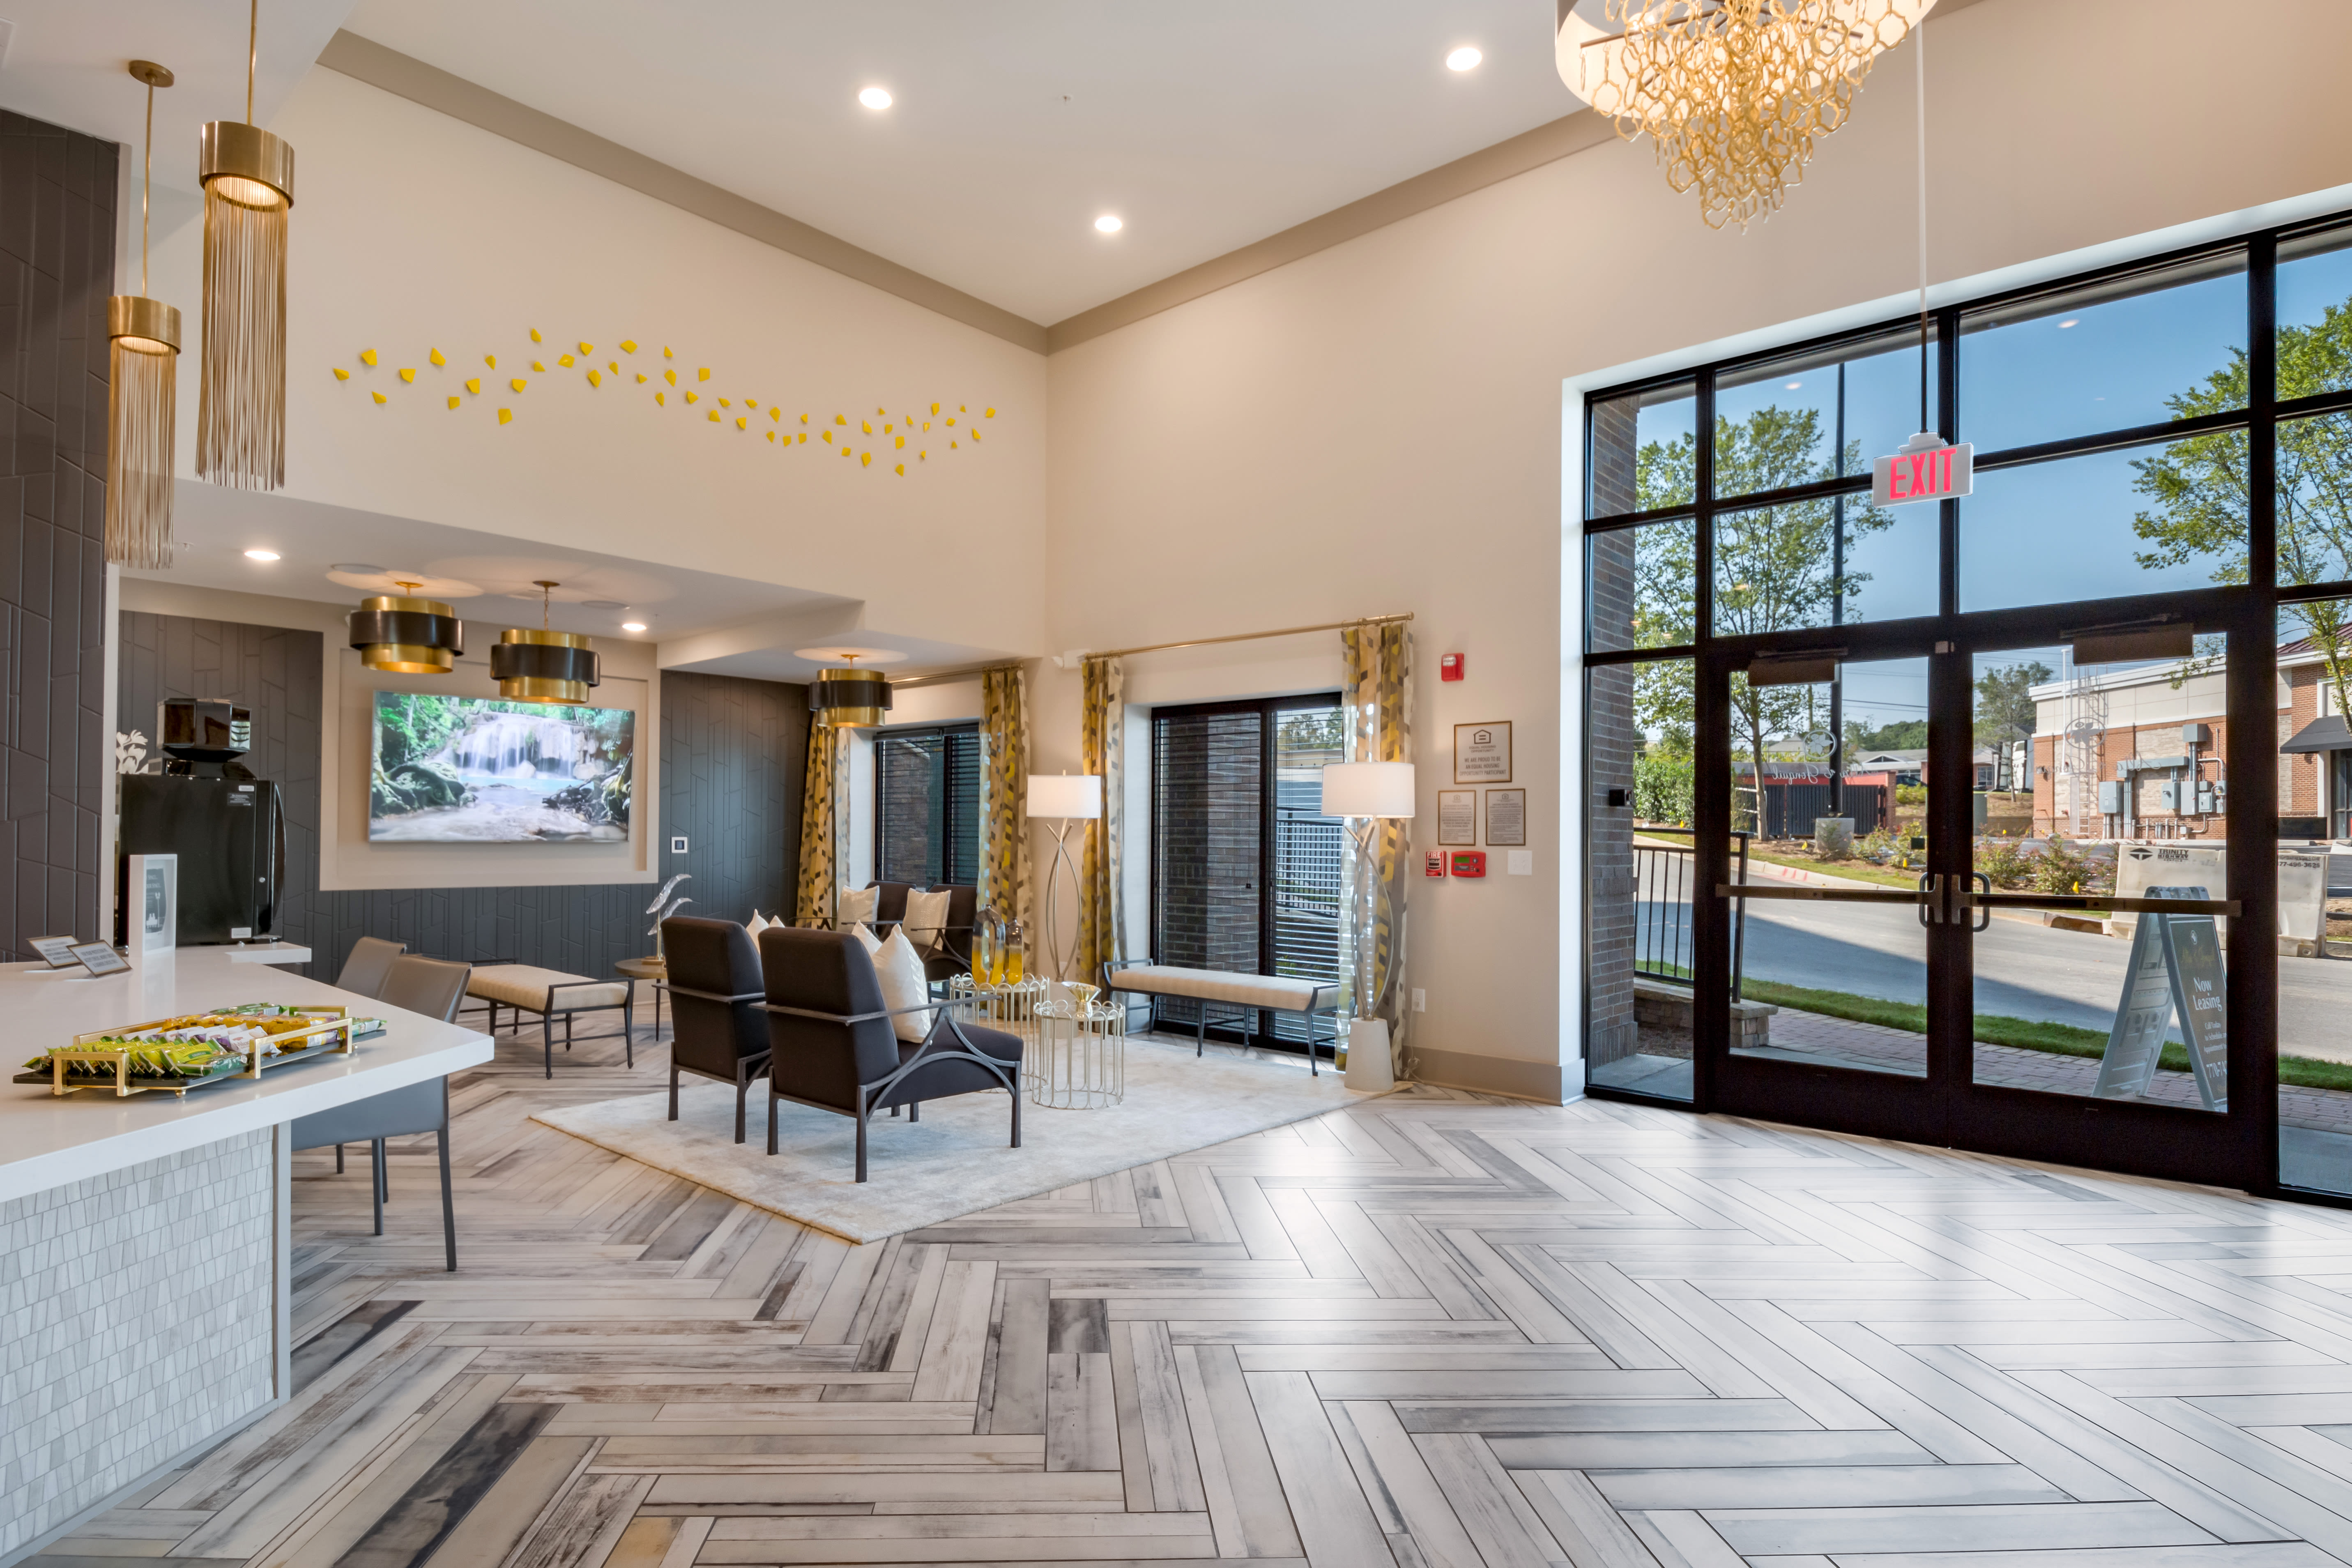 Alta at Jonquil offers a modern club house in Smyrna, Georgia